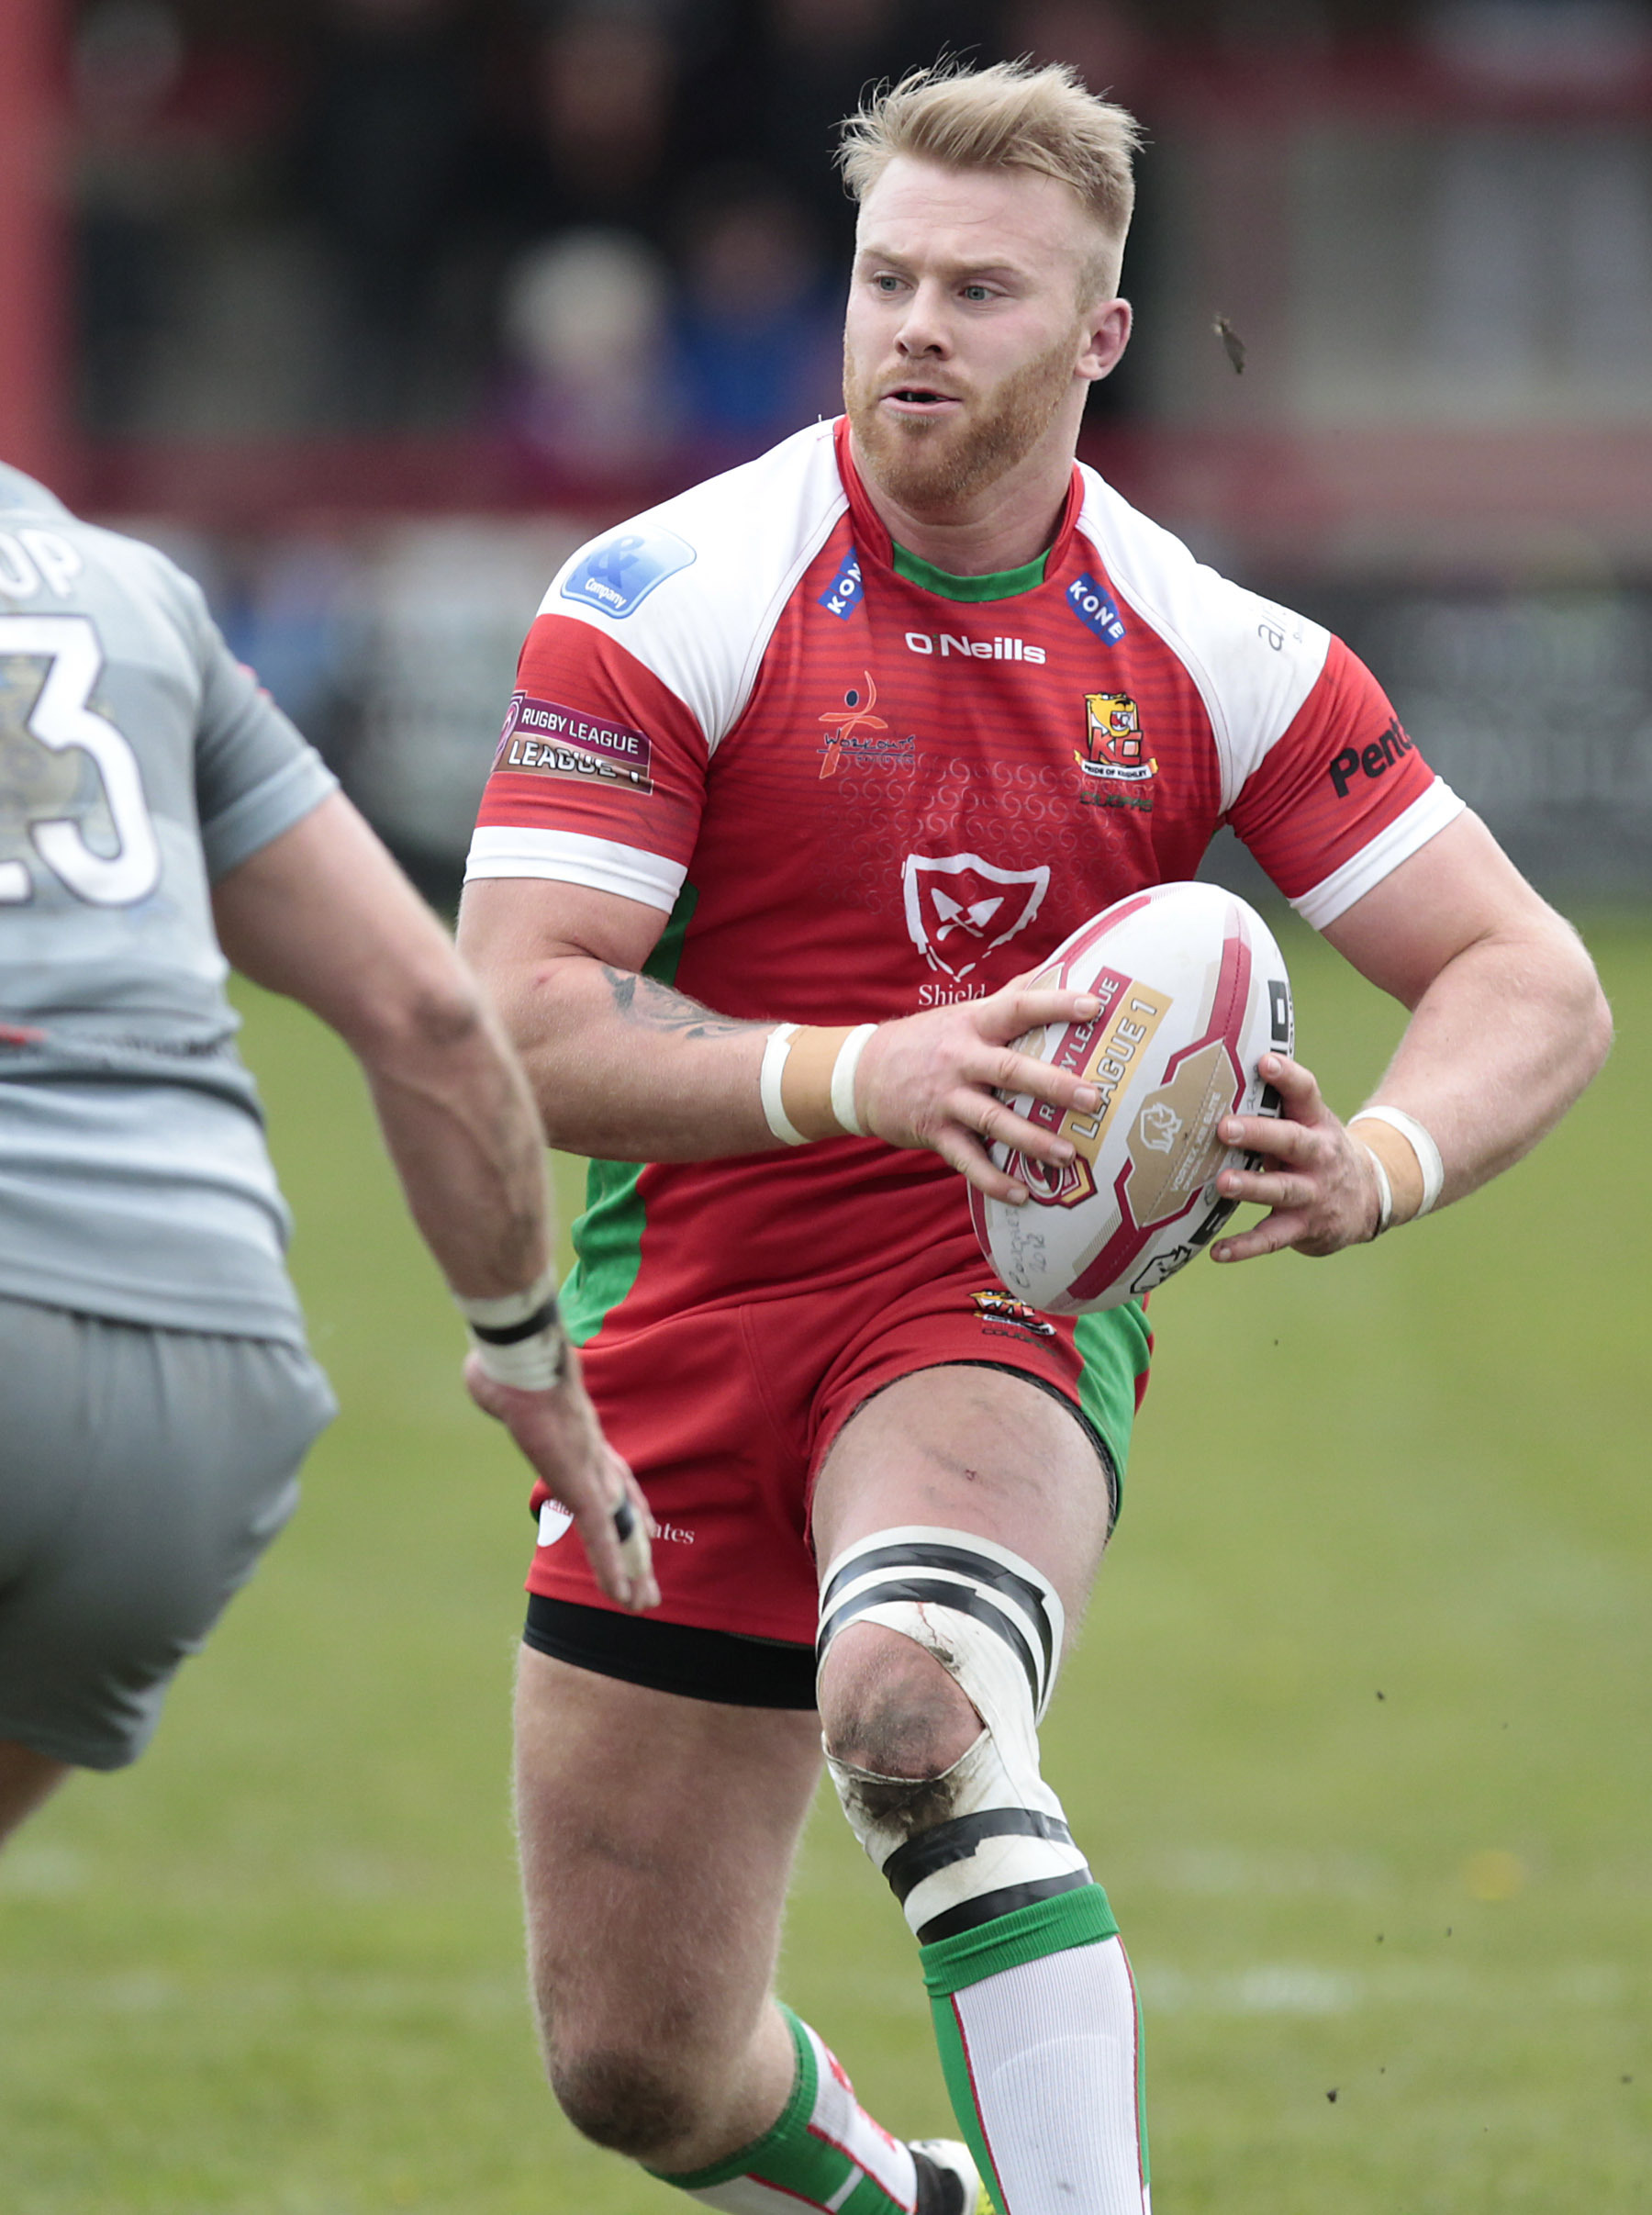 INCOMING: Former Keighley Cougars centre Perry Whiteley is in line to make his York City Knights debut away to West Wales Raiders on Saturday